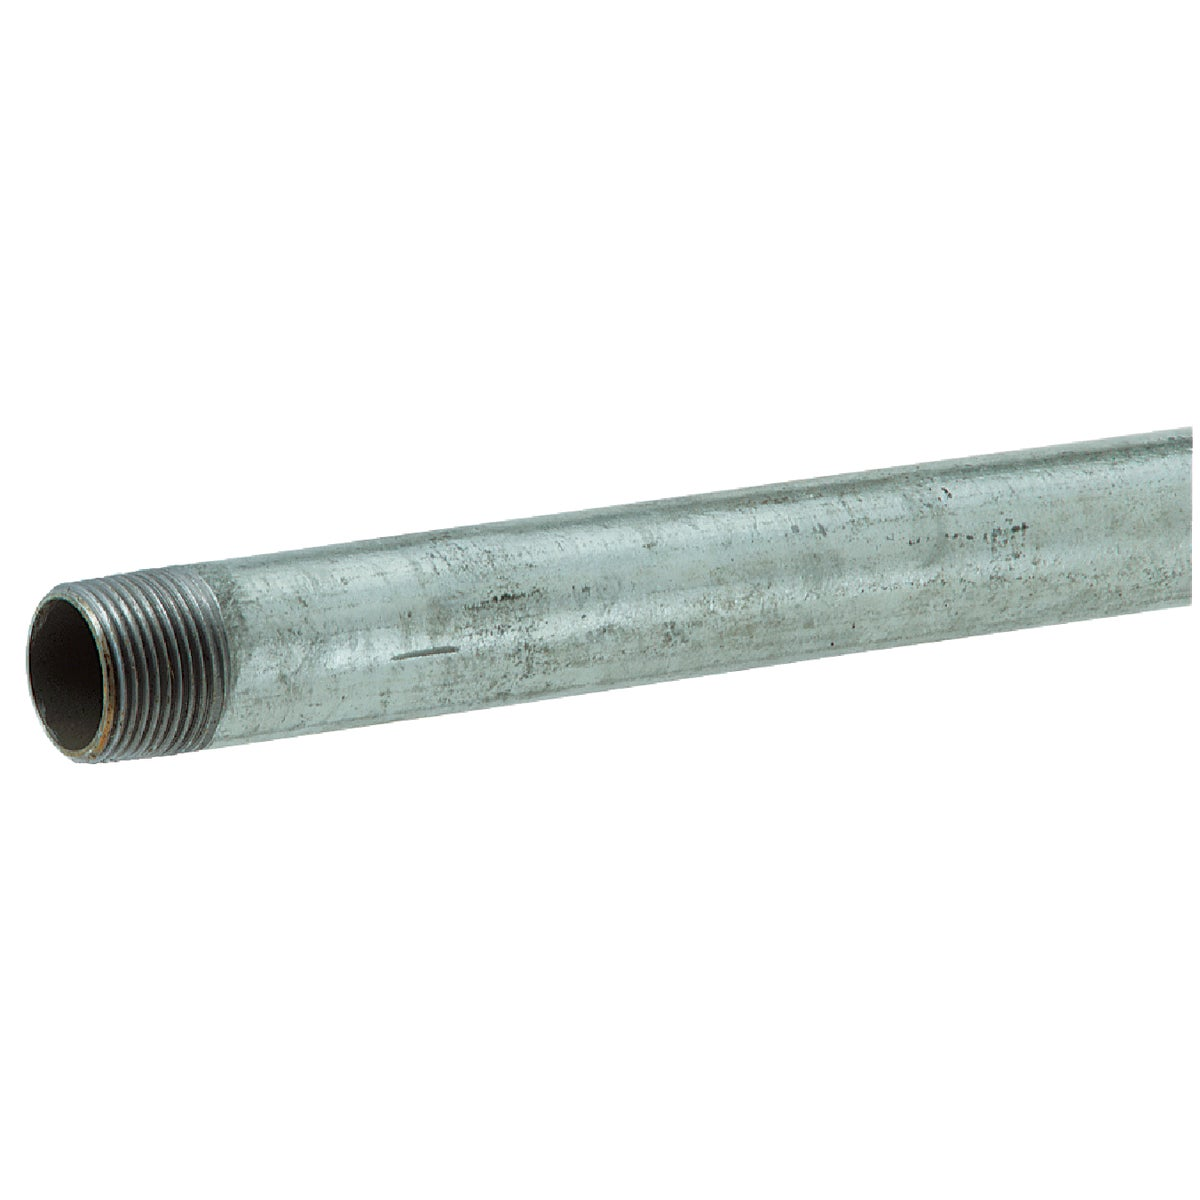 1-1/4X30GALV RDI-CT PIPE